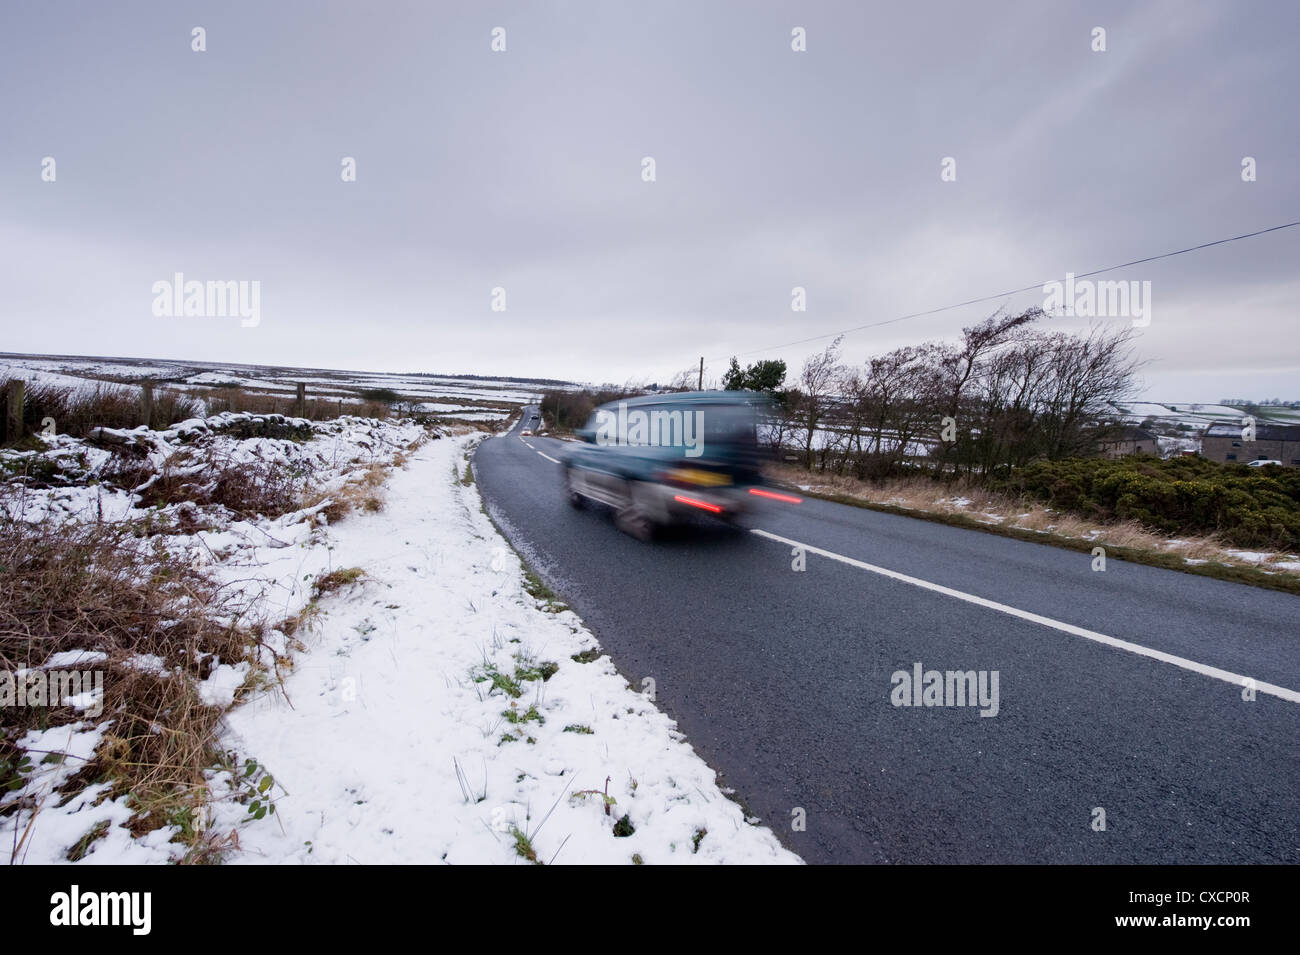 Blurred motion of Toyota Land Cruiser 4x4 traveling past white fields along moorland road on cold, snowy winter's - Stock Image